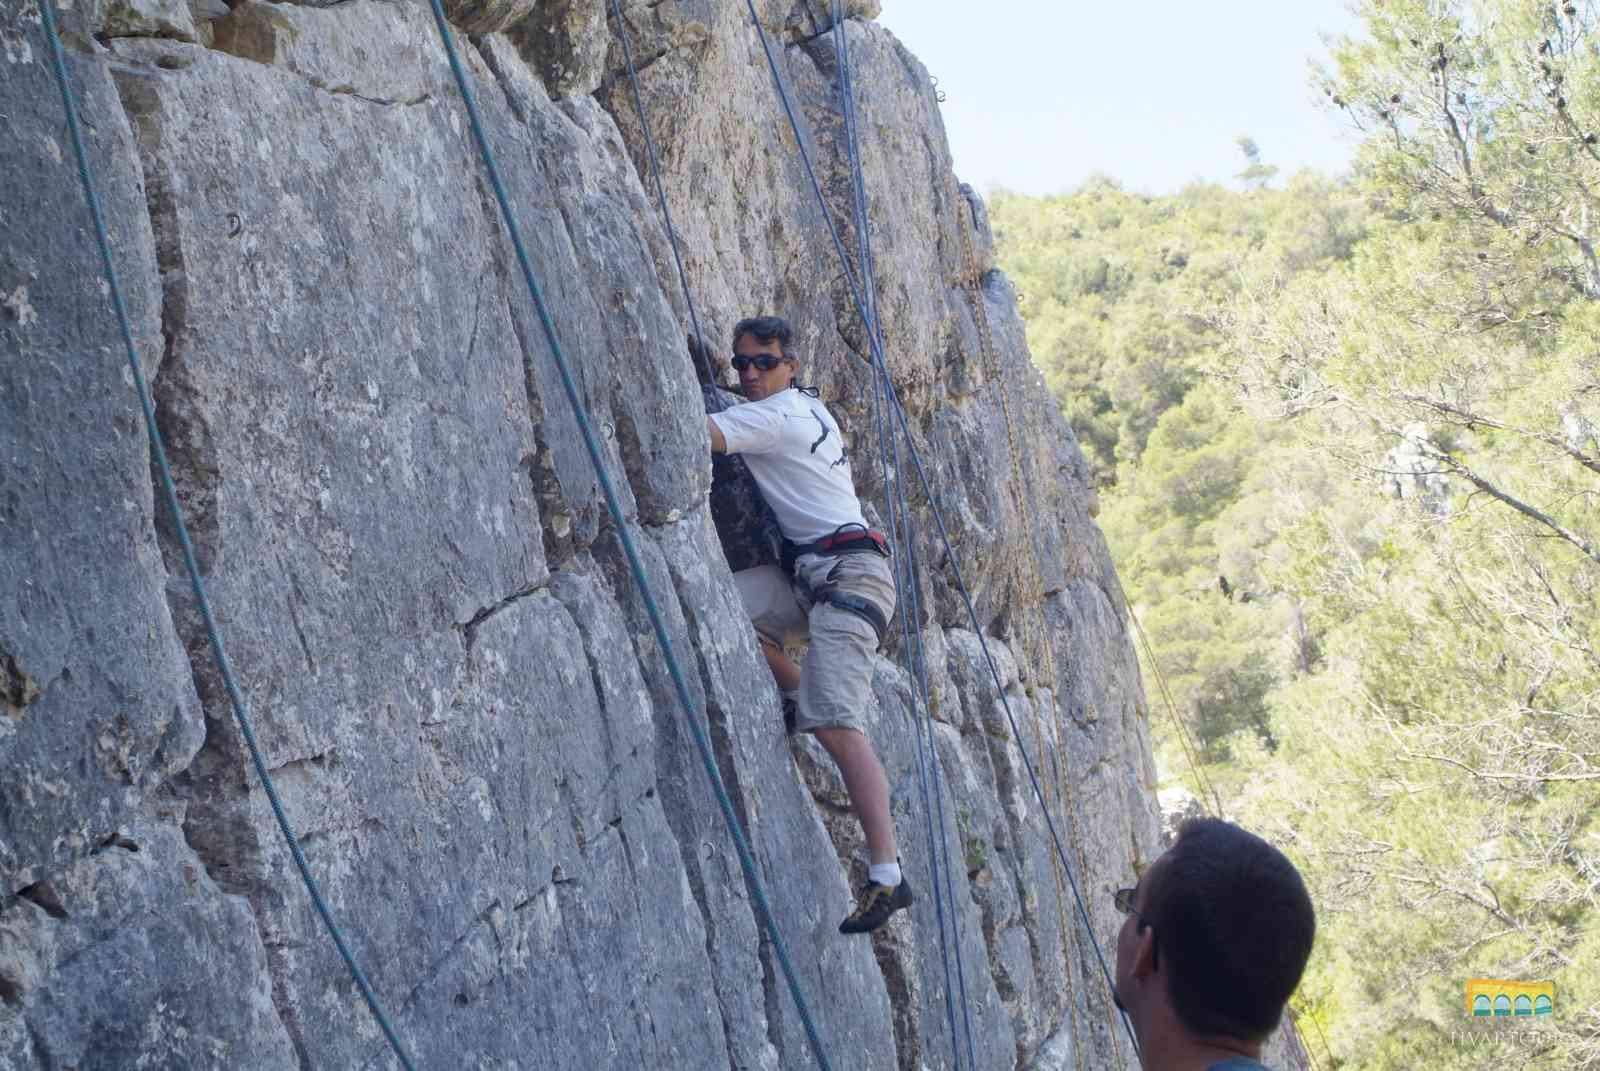 Discovery rock climbing – suitable for beginners climbing